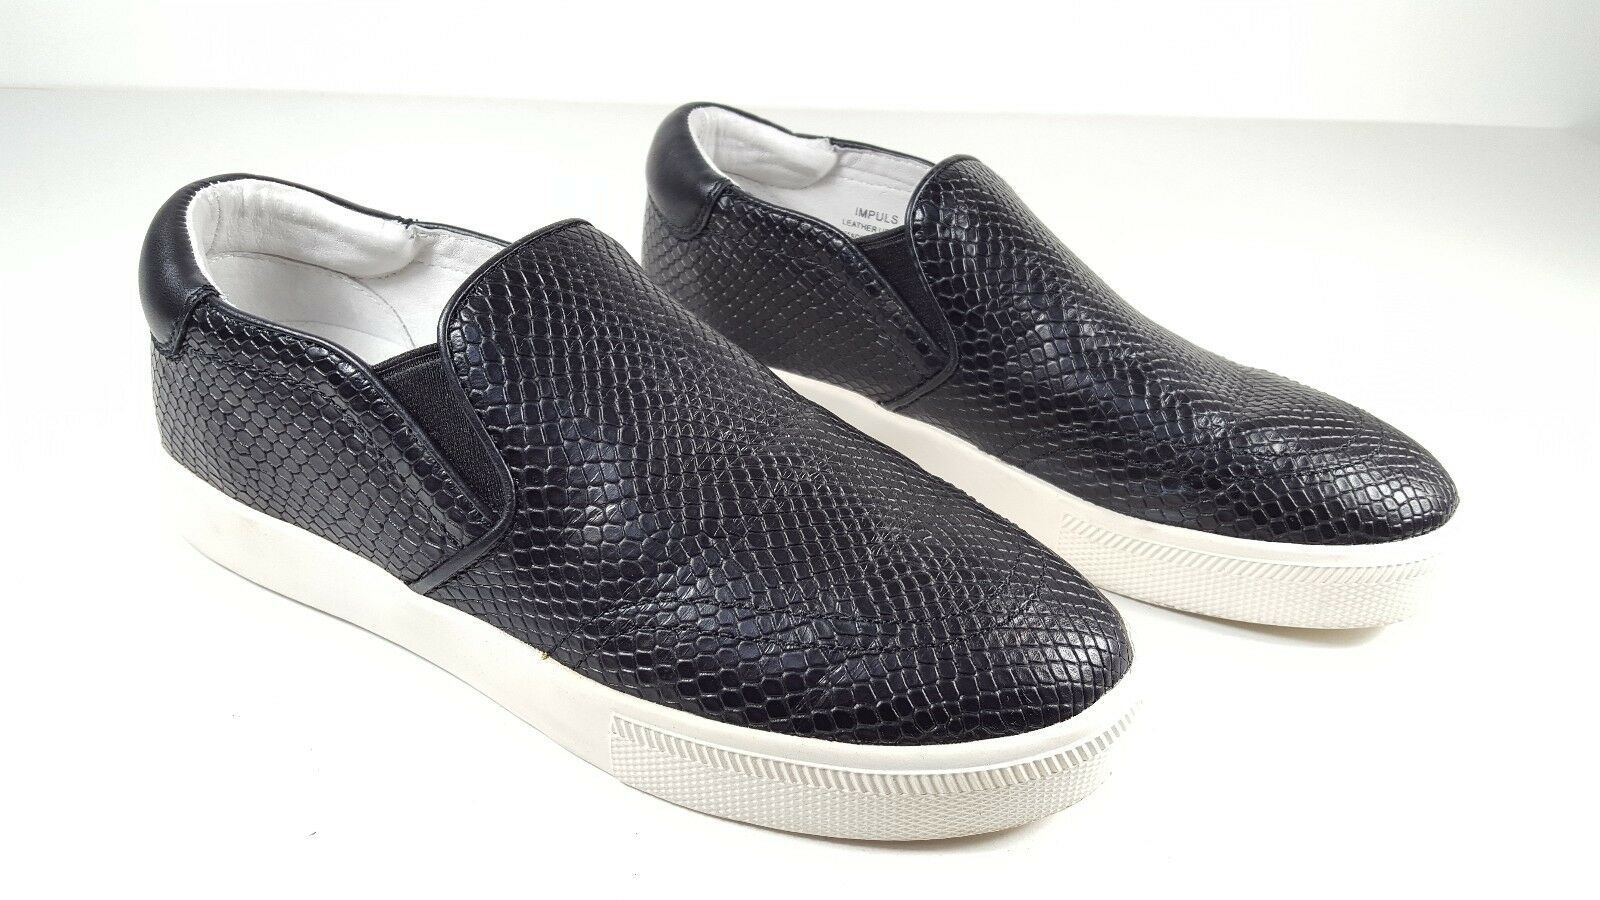 200 size 40 US 9 Ash Impuls Black Genuine Leather Sneakers Slip On Womens shoes